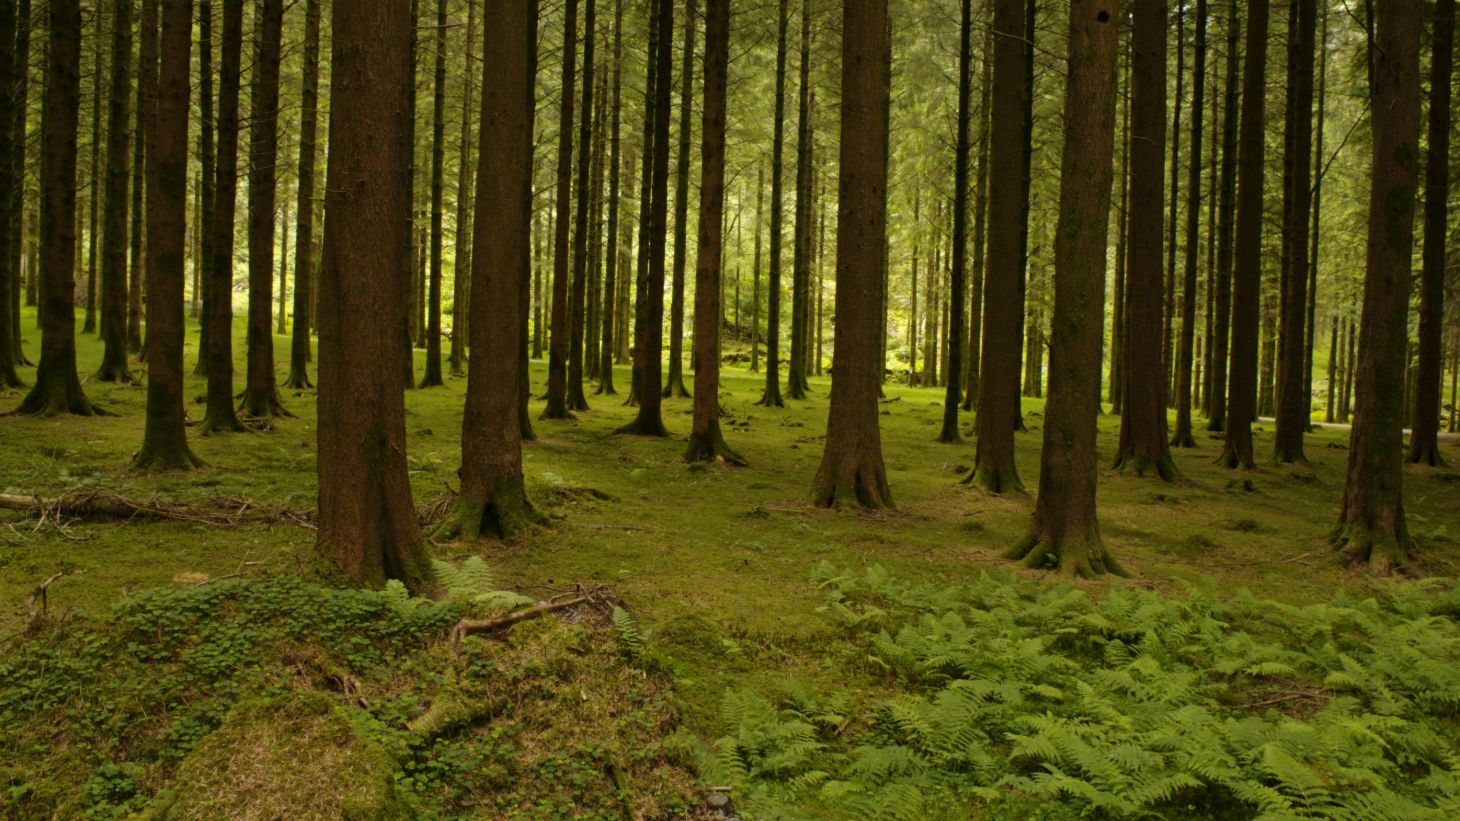 Discover the rocky mountains and forested valleys ofGouganeBarra Forest Park.